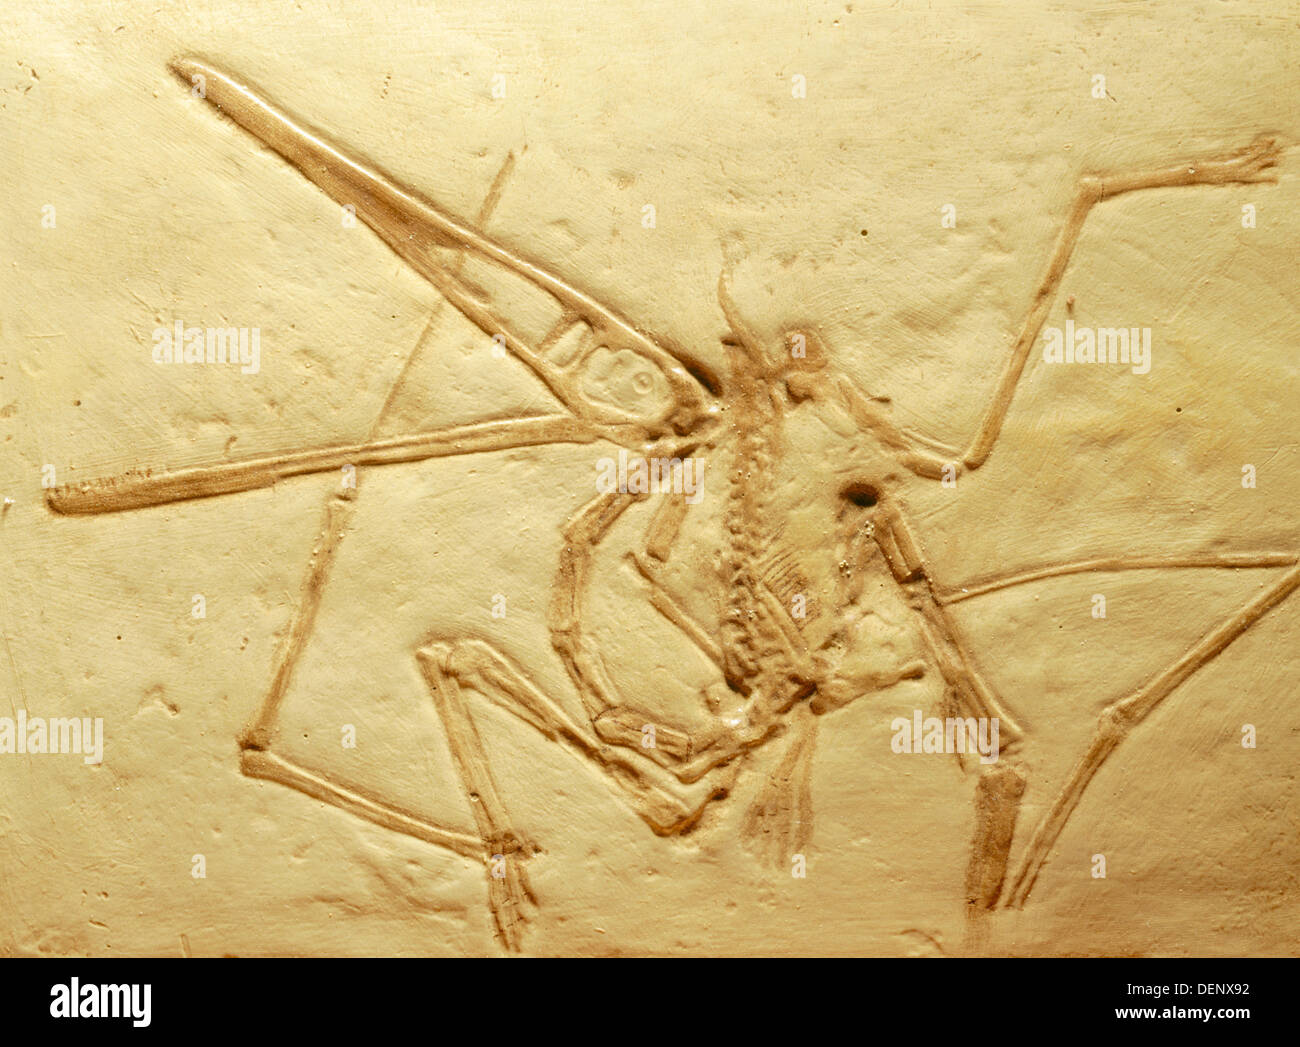 Pterodactyl (Pterodactylus antiques), Jurassic, Germany - Stock Image